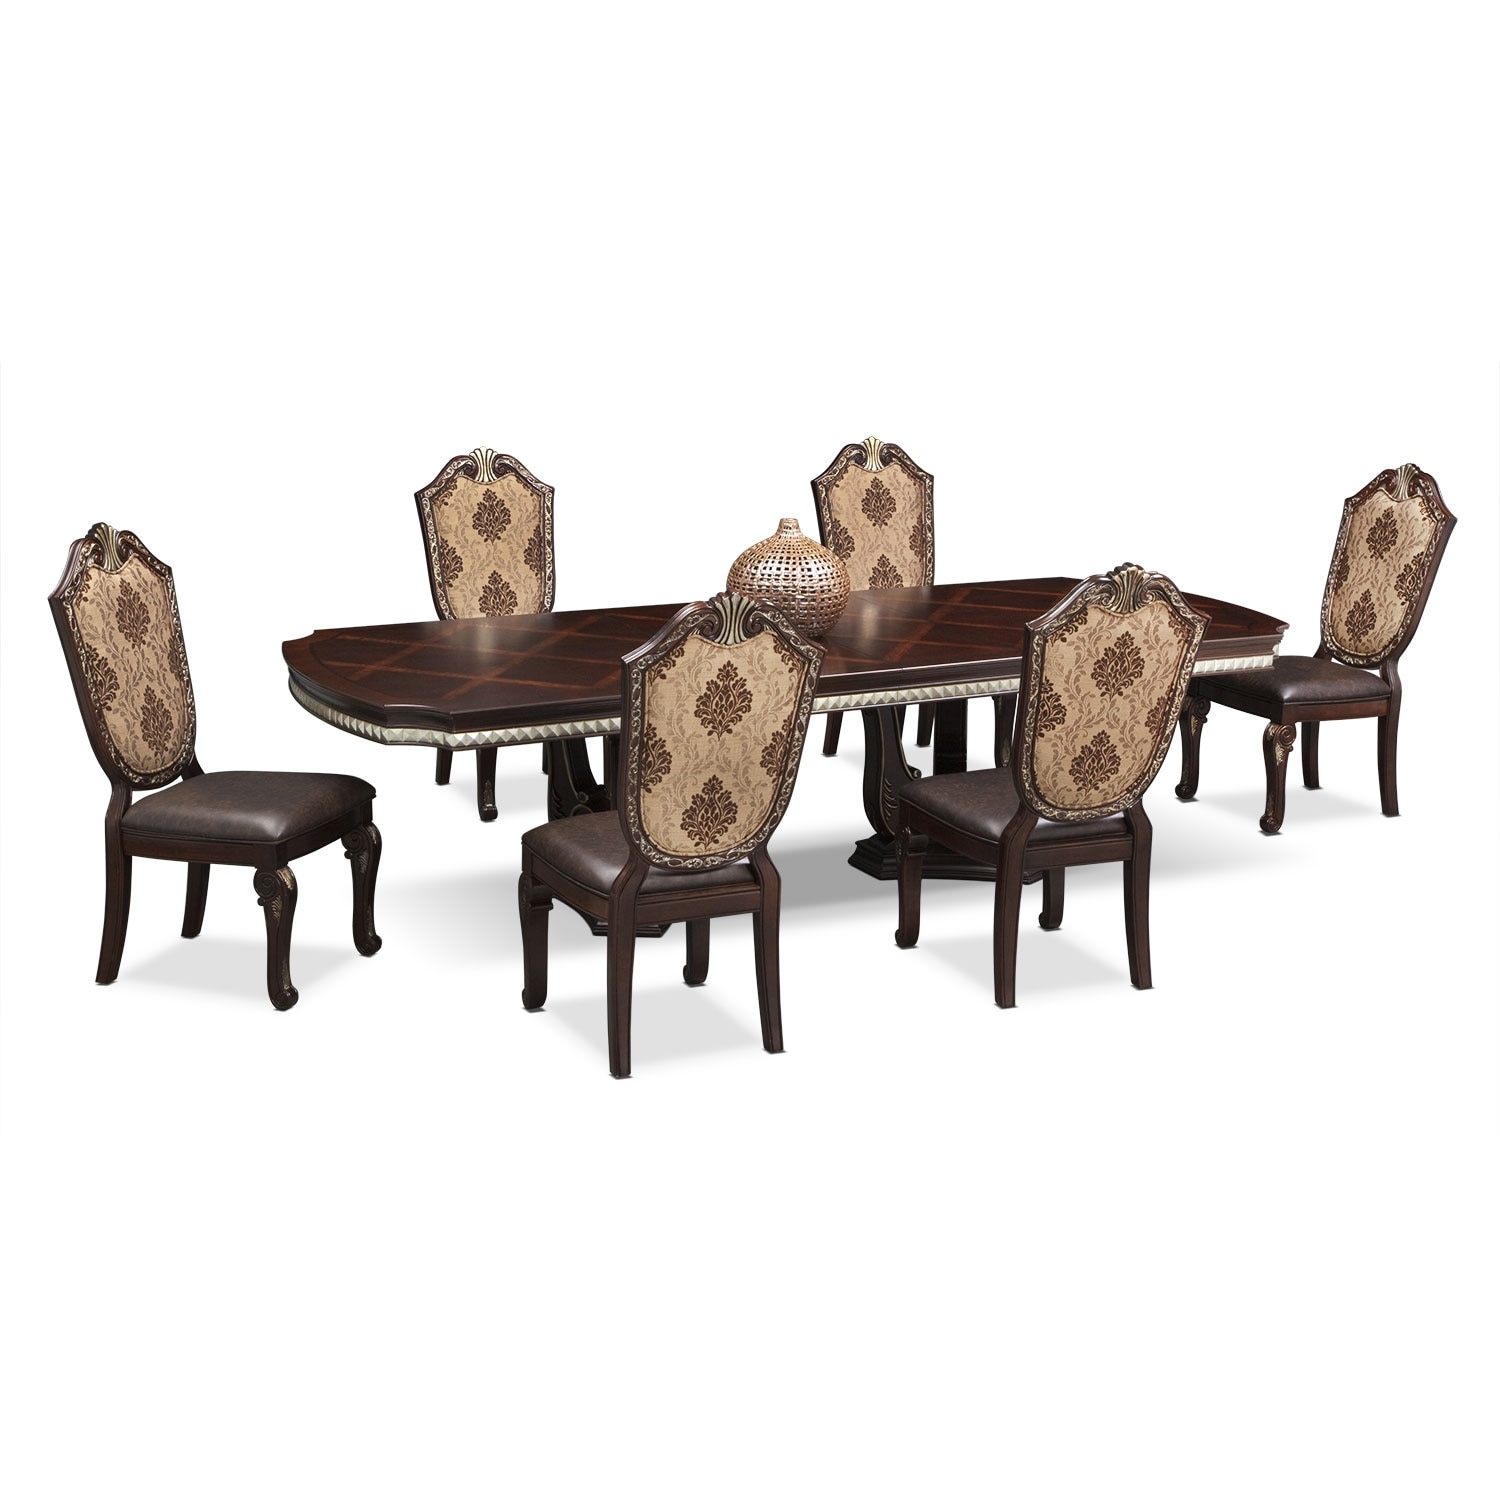 [Monte Cristo 7 Pc. Dining Room]